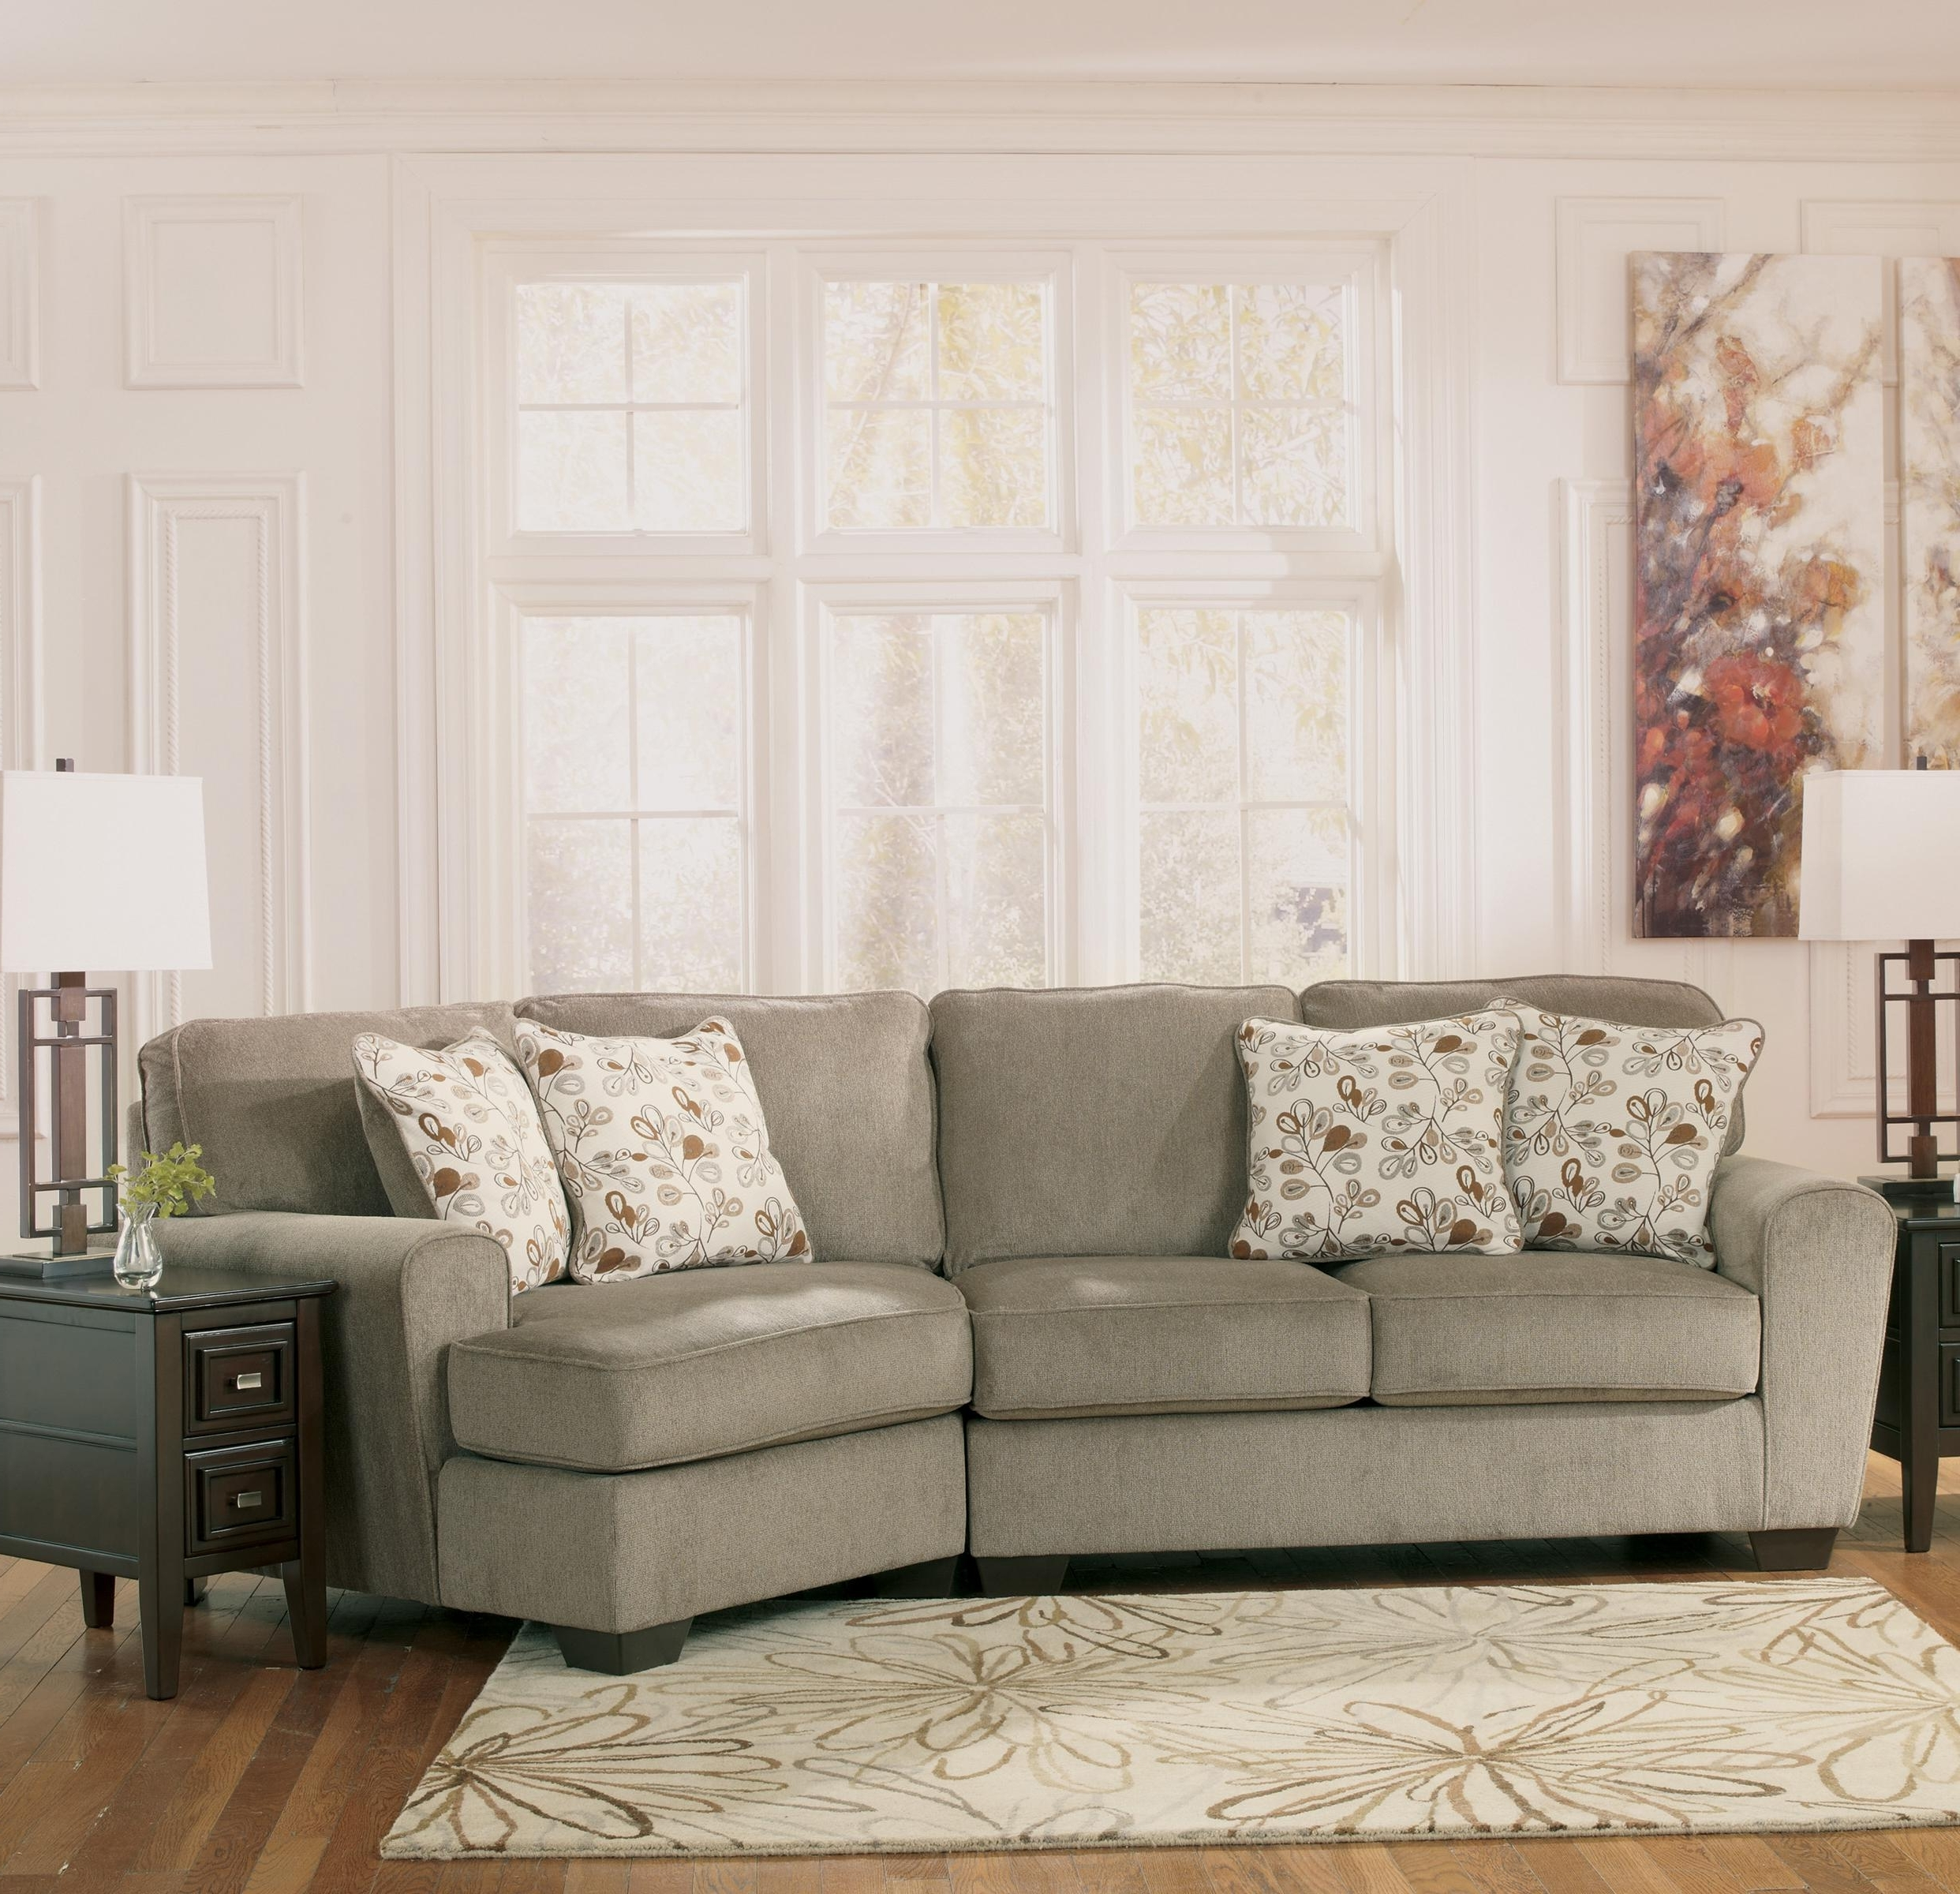 Well Known Ashley Furniture Patola Park – Patina 2 Piece Sectional With Right With Regard To Cuddler Sectional Sofas (View 13 of 15)